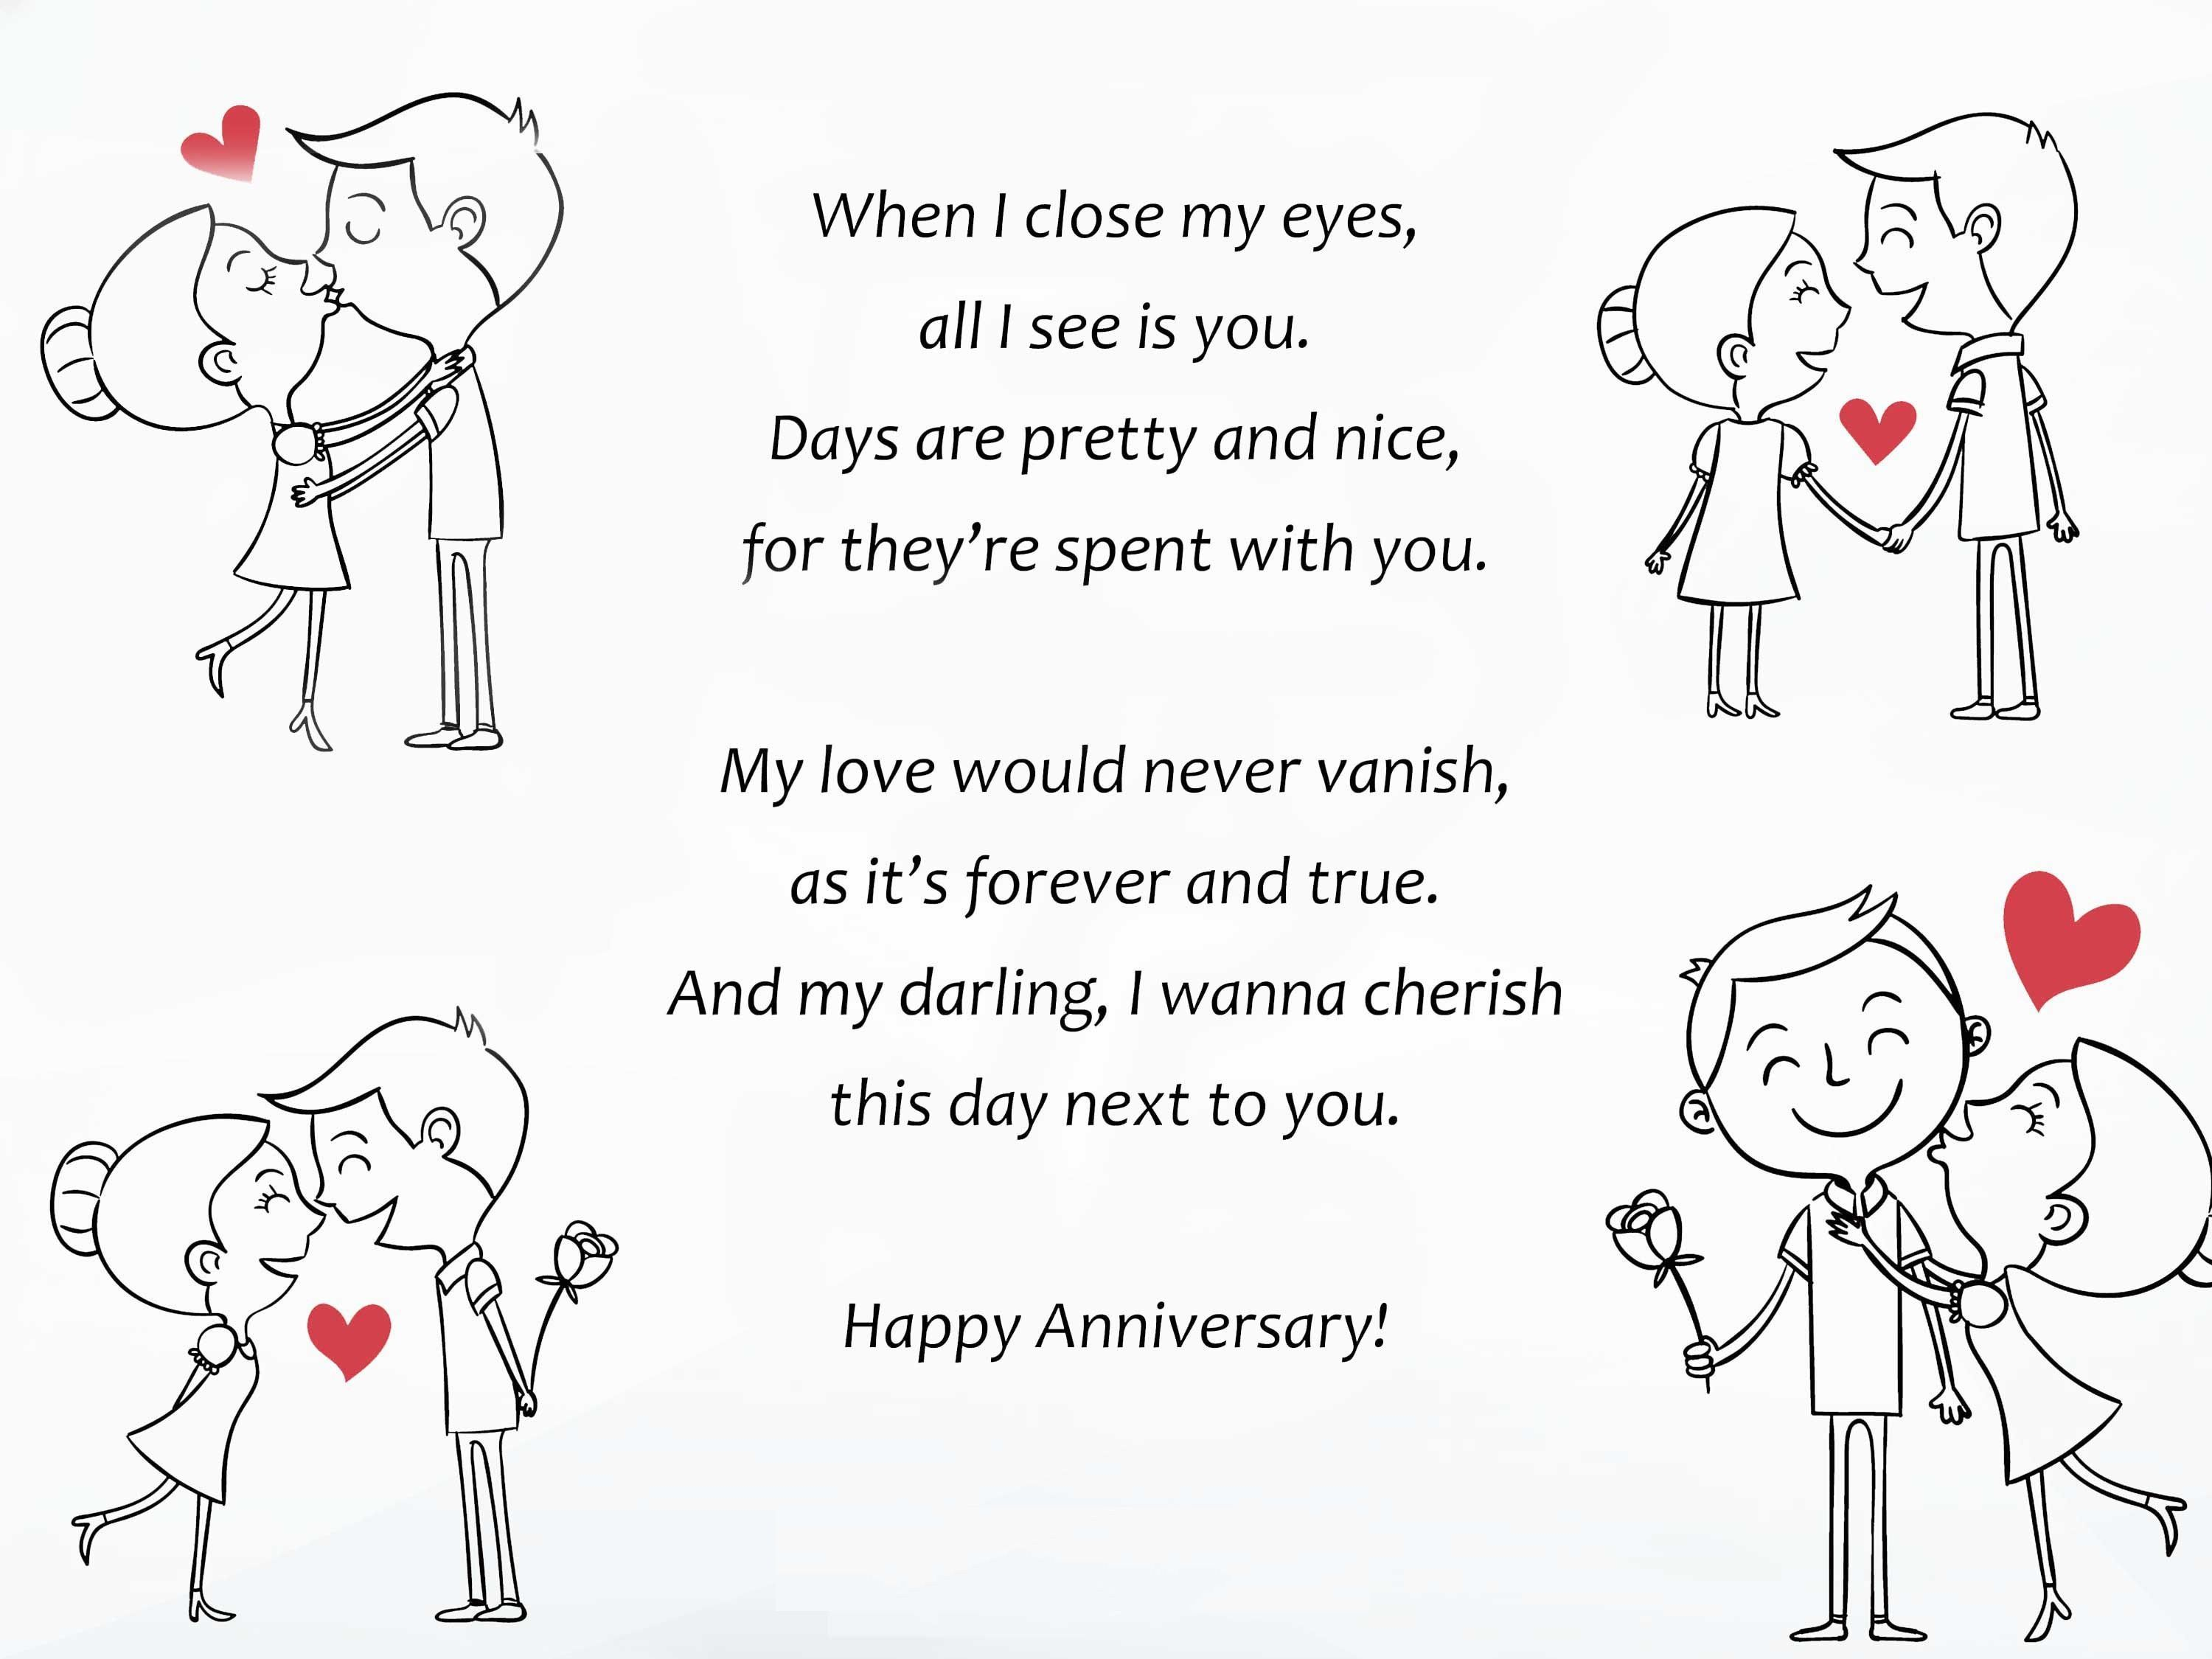 Funny Marriage Anniversary Wishes For Husband Original And Funny Wedding Anniversary Anniversary Poems Anniversary Quotes Funny Anniversary Wishes For Husband